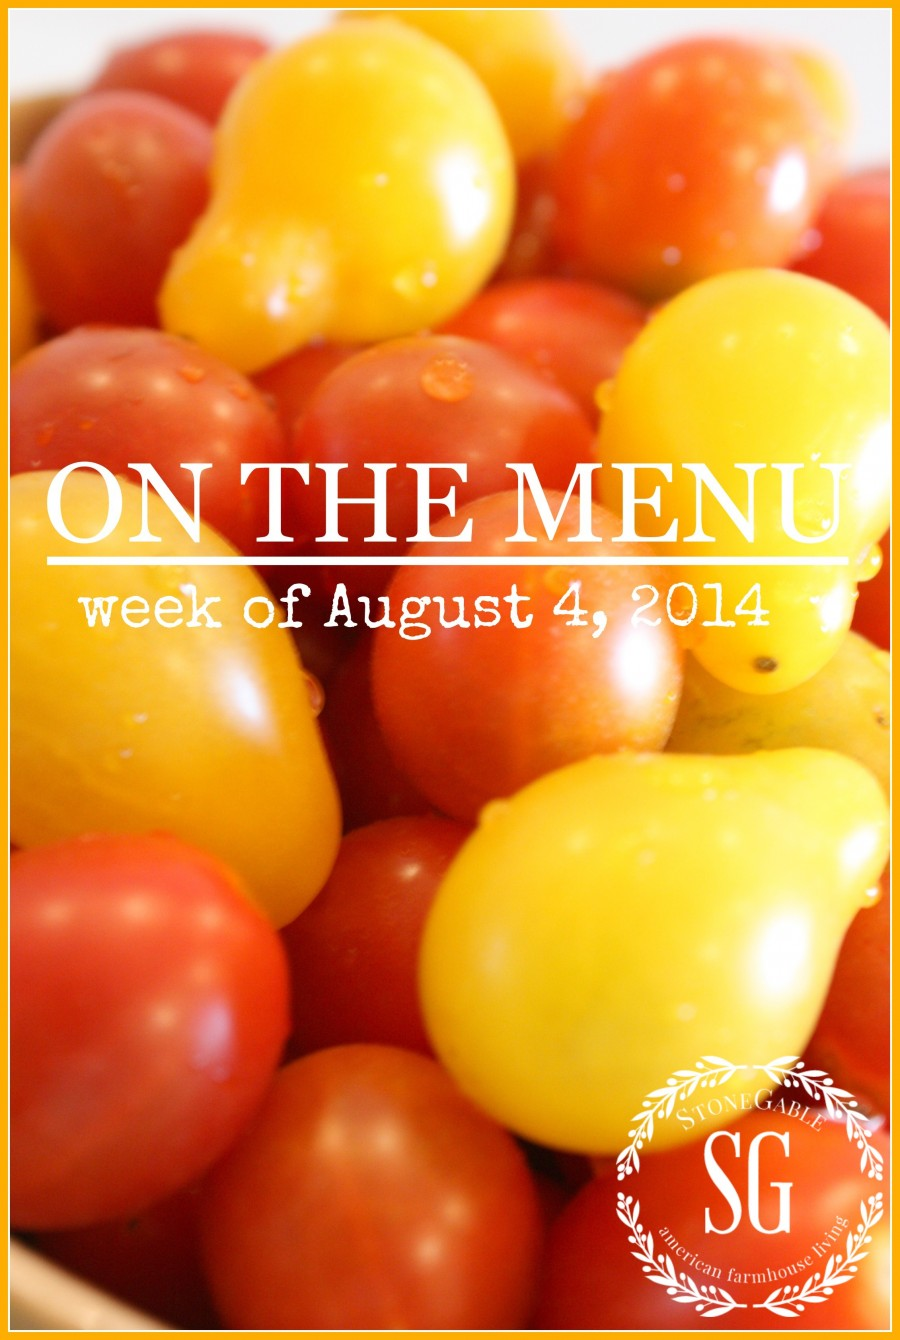 ON THE MENU MONDAY WEEK OF AUGUST 4, 2014